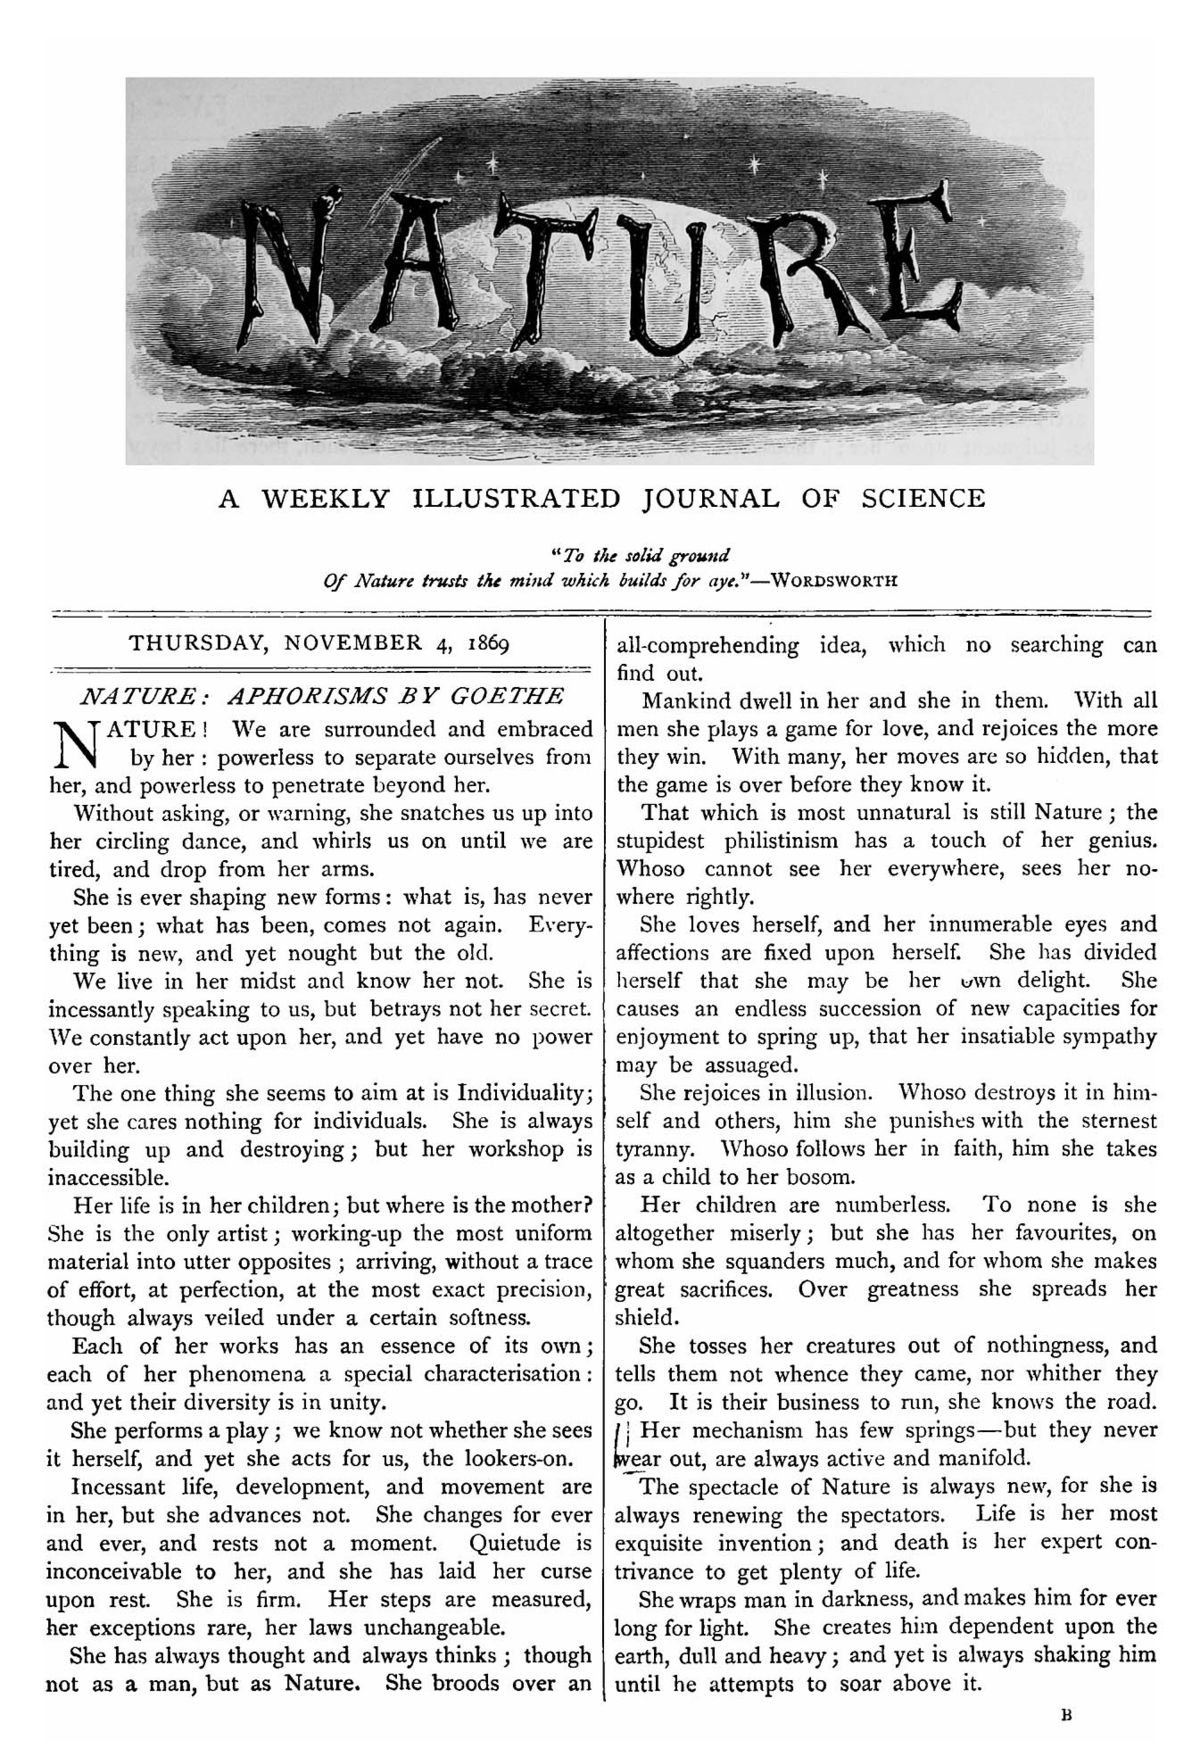 017 Free Research Papers On English Literature Paper 1200px Nature Cover2c November 42c 1869 Amazing Full